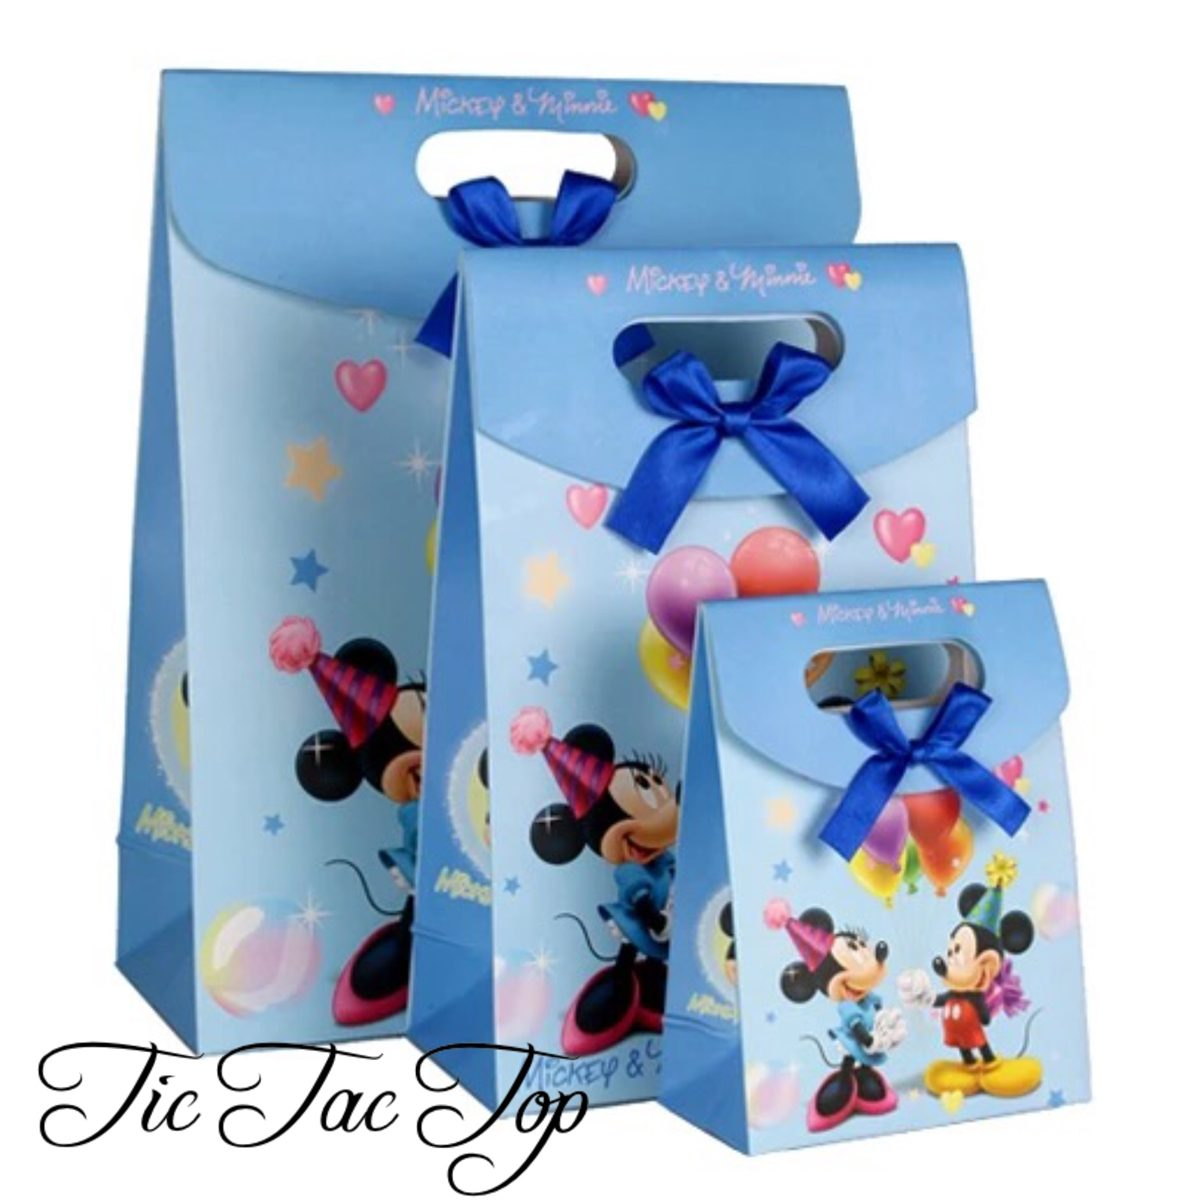 Mickey & Minnie Mouse Blue Balloons Gift & Lolly Bag - 6 Bags